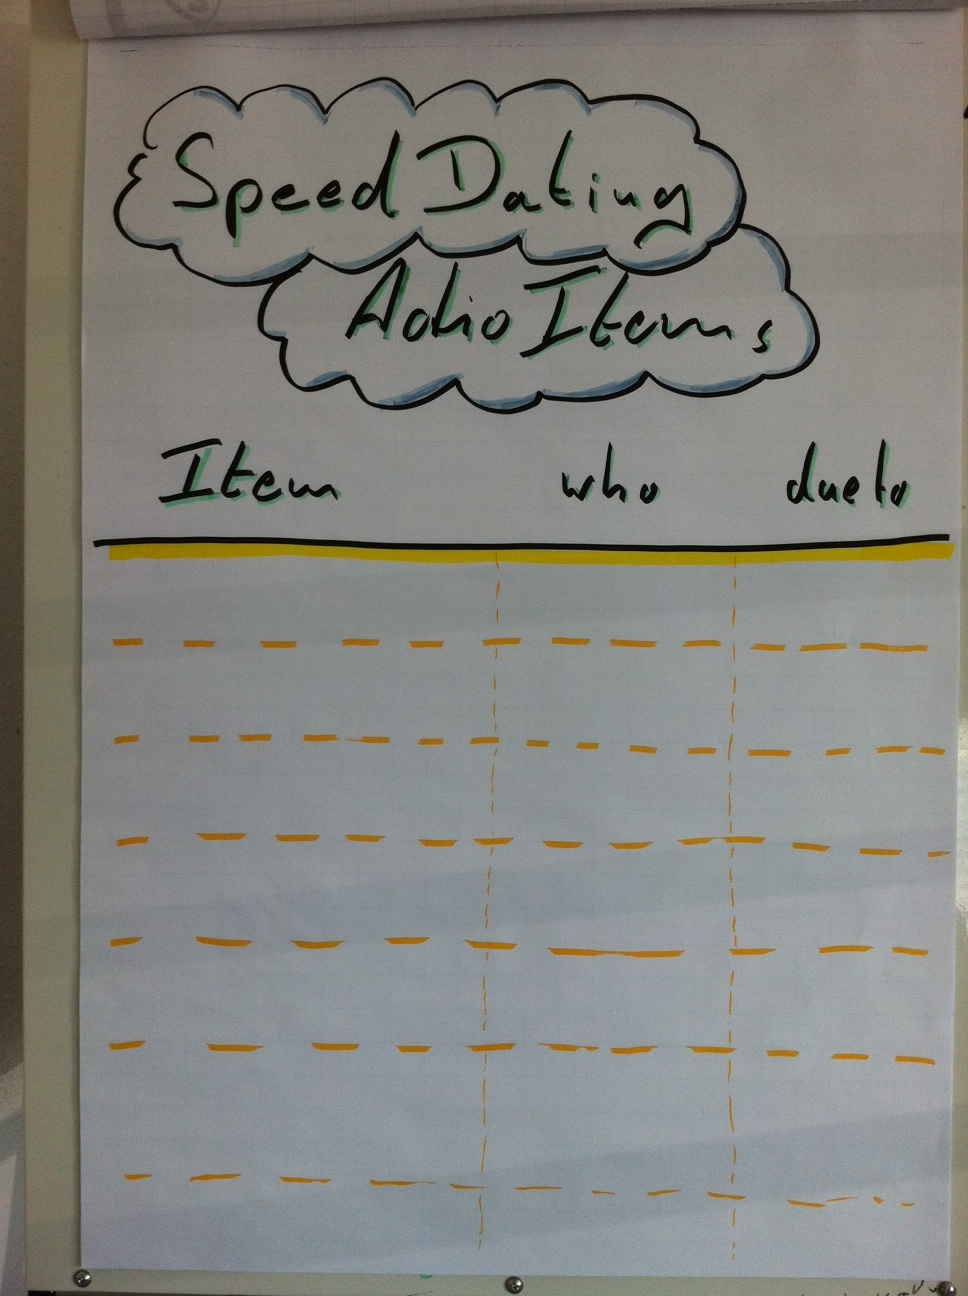 Ehow speed dating